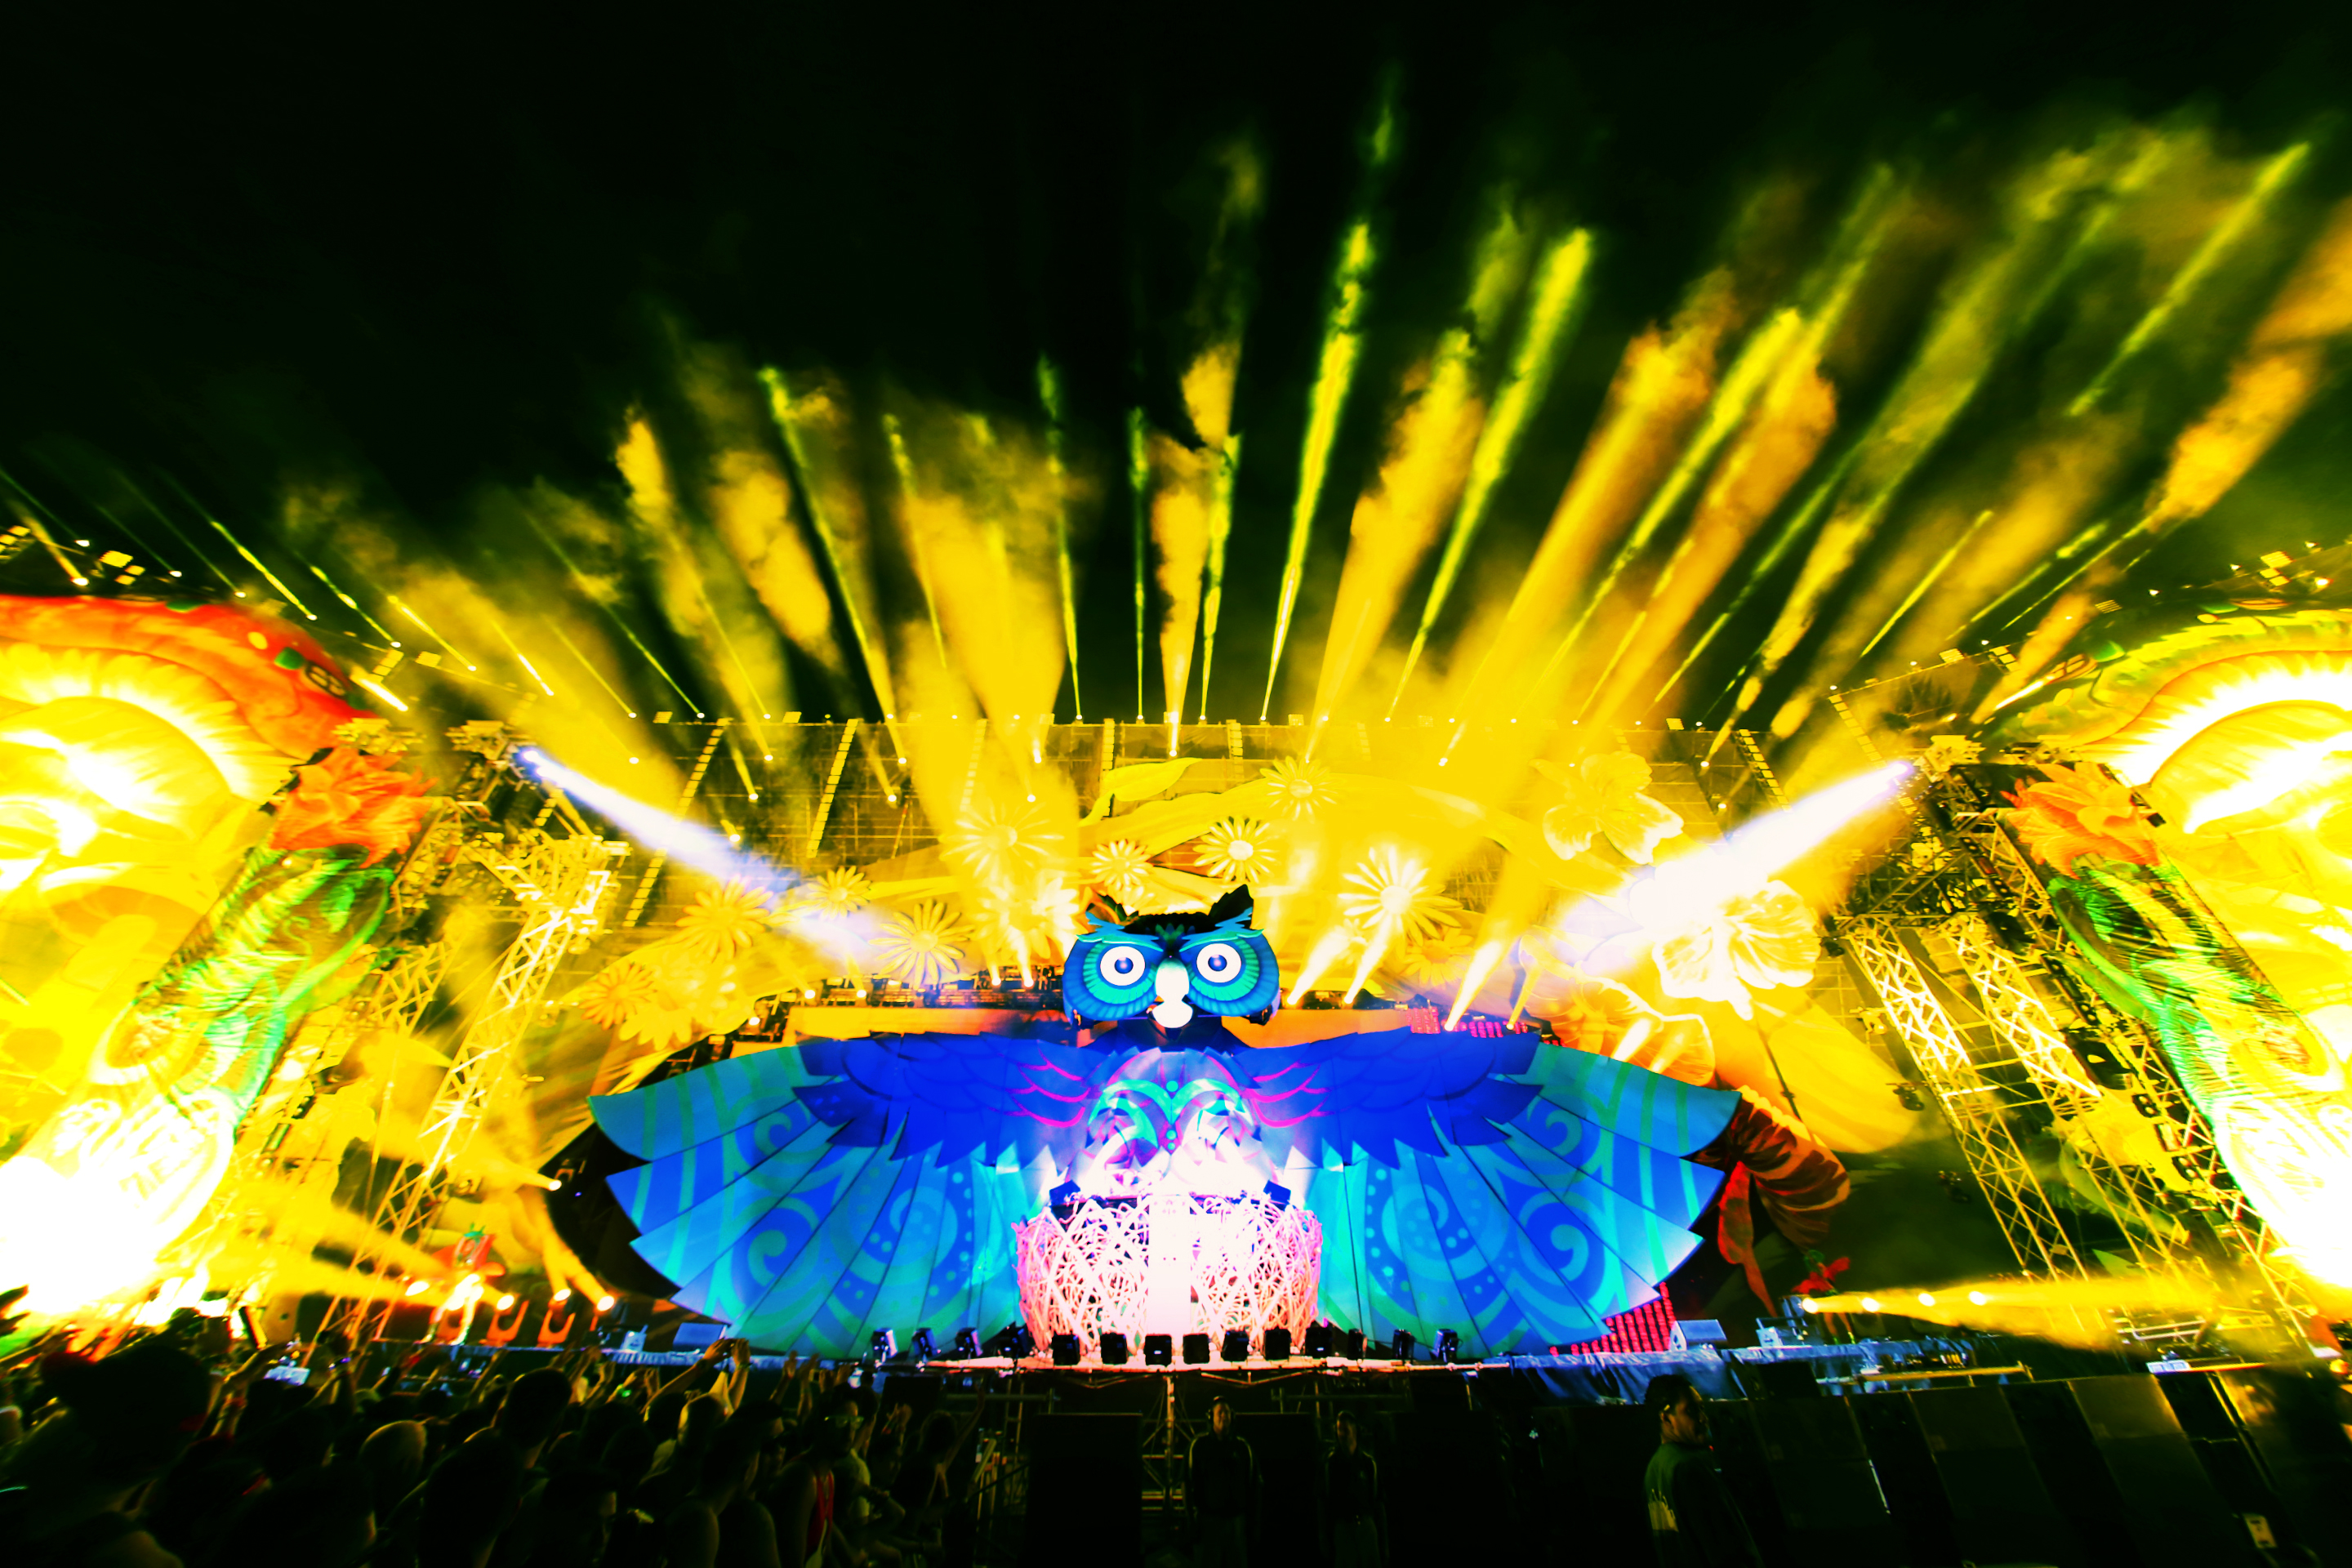 BREAKING NEWS! Insomniac Expands EDC 2014 To Two Full Weekends